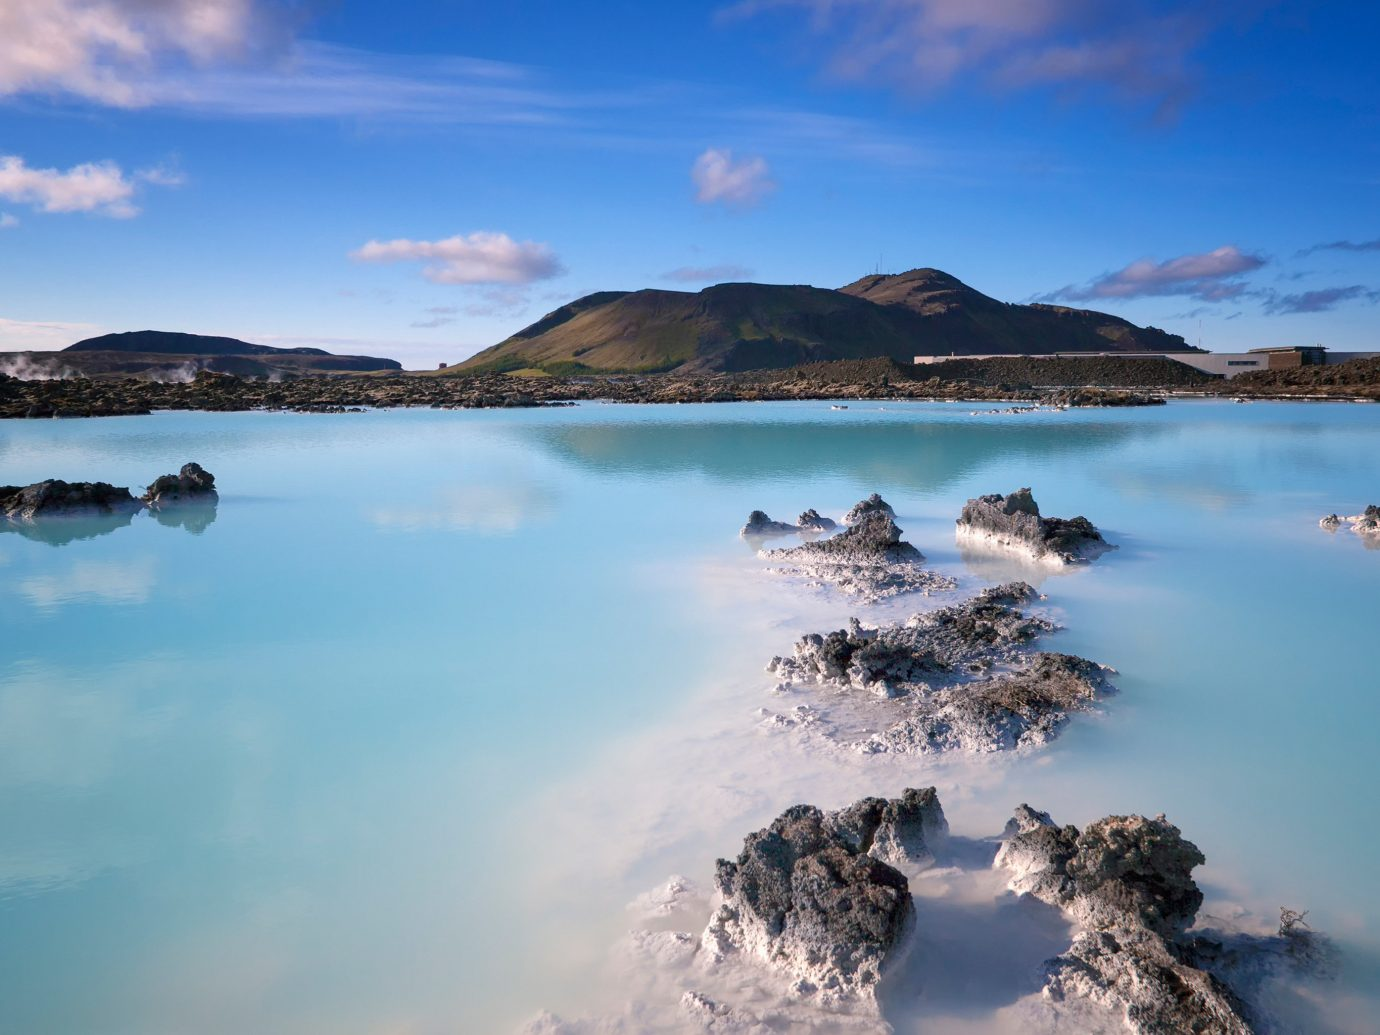 Hotels Iceland Lake Mountains Natural wonders Scenic views Travel Tips Trip Ideas sky water outdoor reflection Nature mountain cloud Sea body of water shore loch horizon Coast Ocean morning bay landscape reservoir dusk sunlight dawn Lagoon Beach Island surrounded clouds promontory day